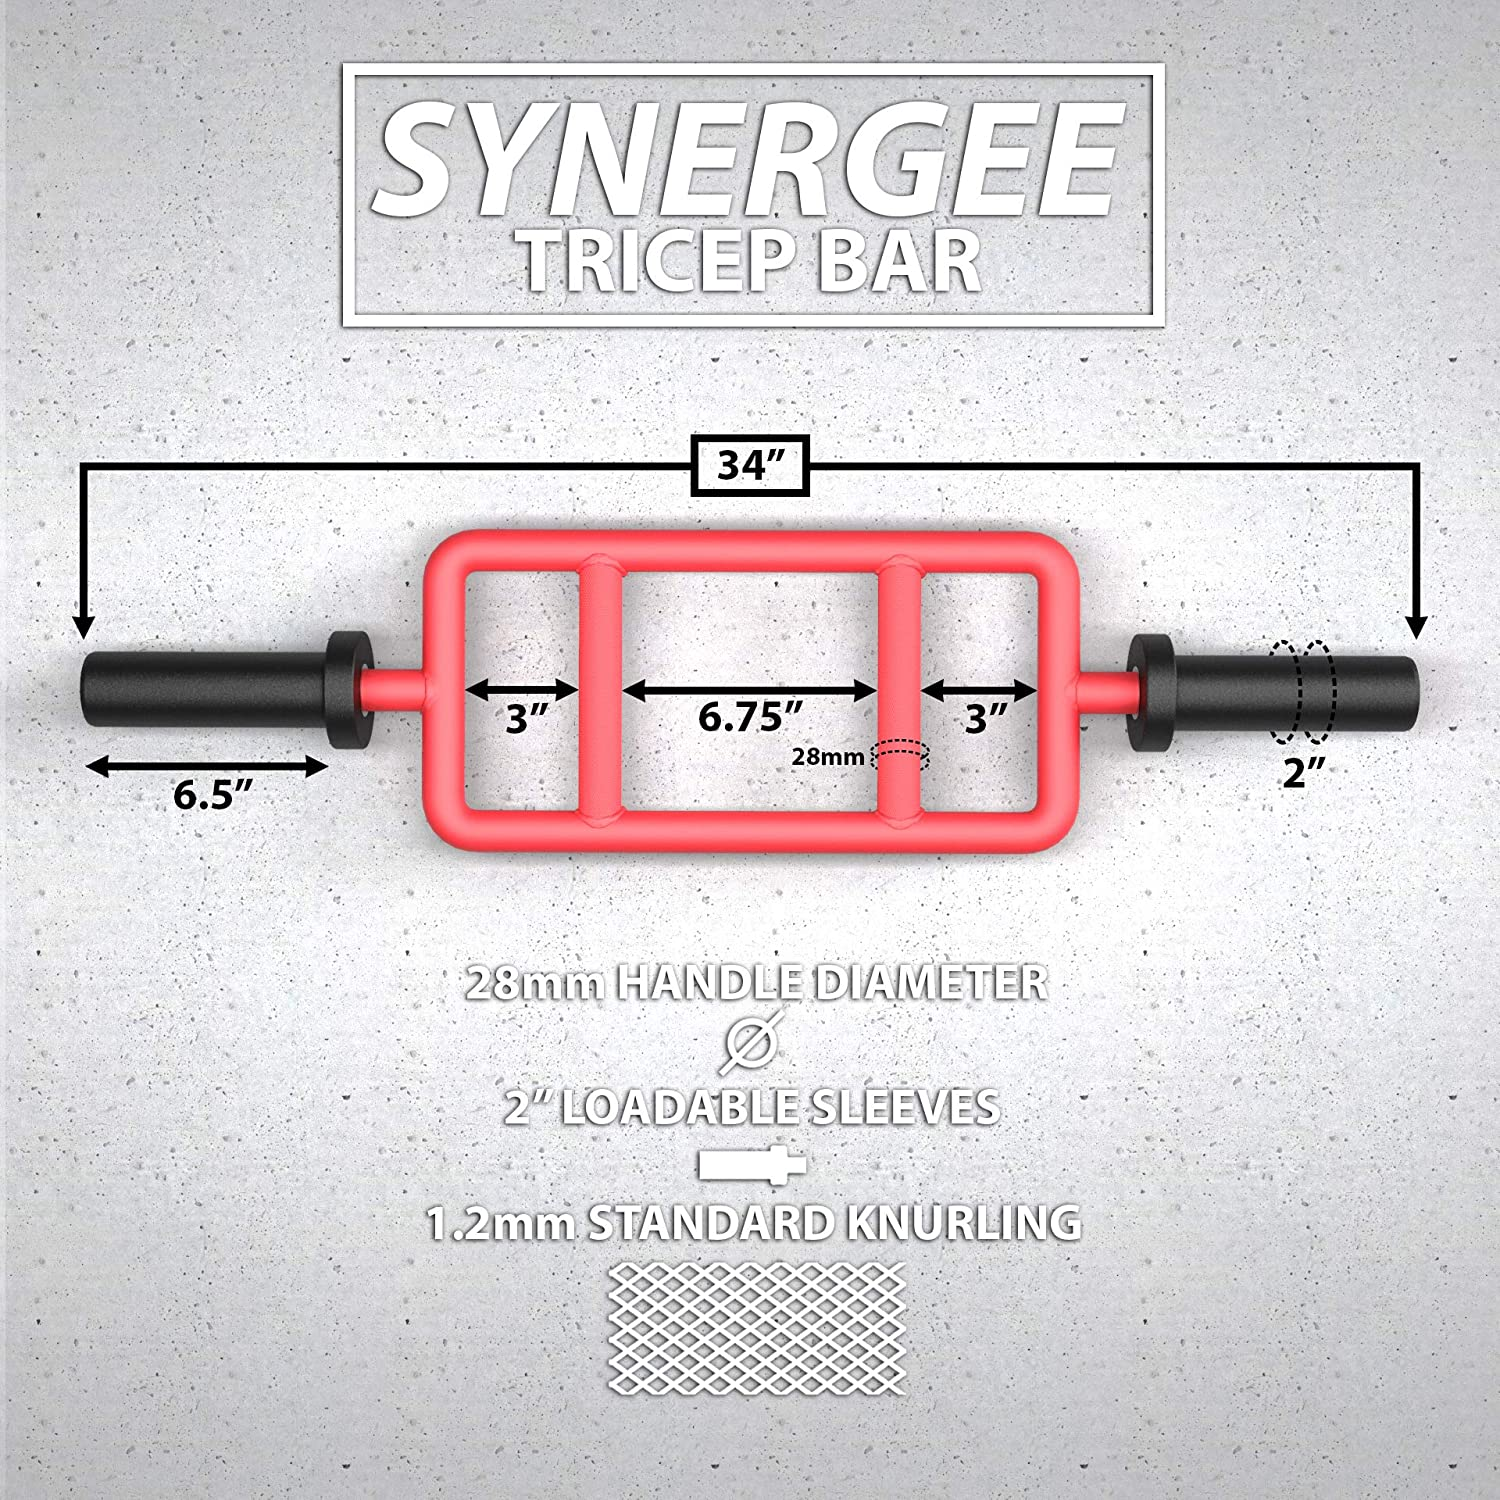 Pressing Workouts Synergee Tricep Bar 25 lbs for Maximum Gains /& Comfort for Extensions Black Chrome Curls Upper Body Exercise Gear Available in Red